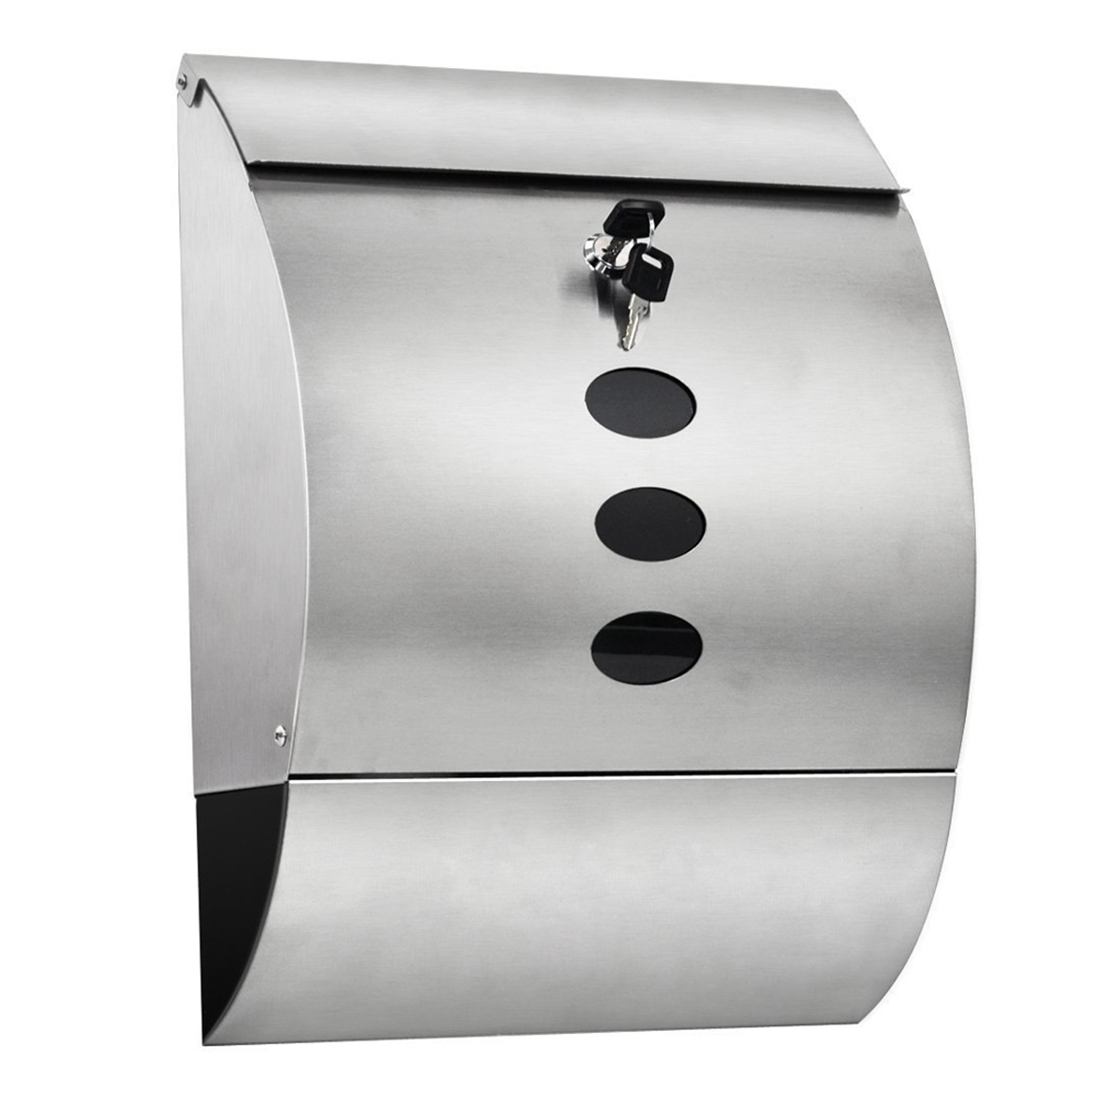 Mailbox stainless steel locking mail box letterbox postal box modern - Waterproof Stainless Steel Lockable Mailbox Newspaper Holder Outdoor Mail Post Letter Box Silver